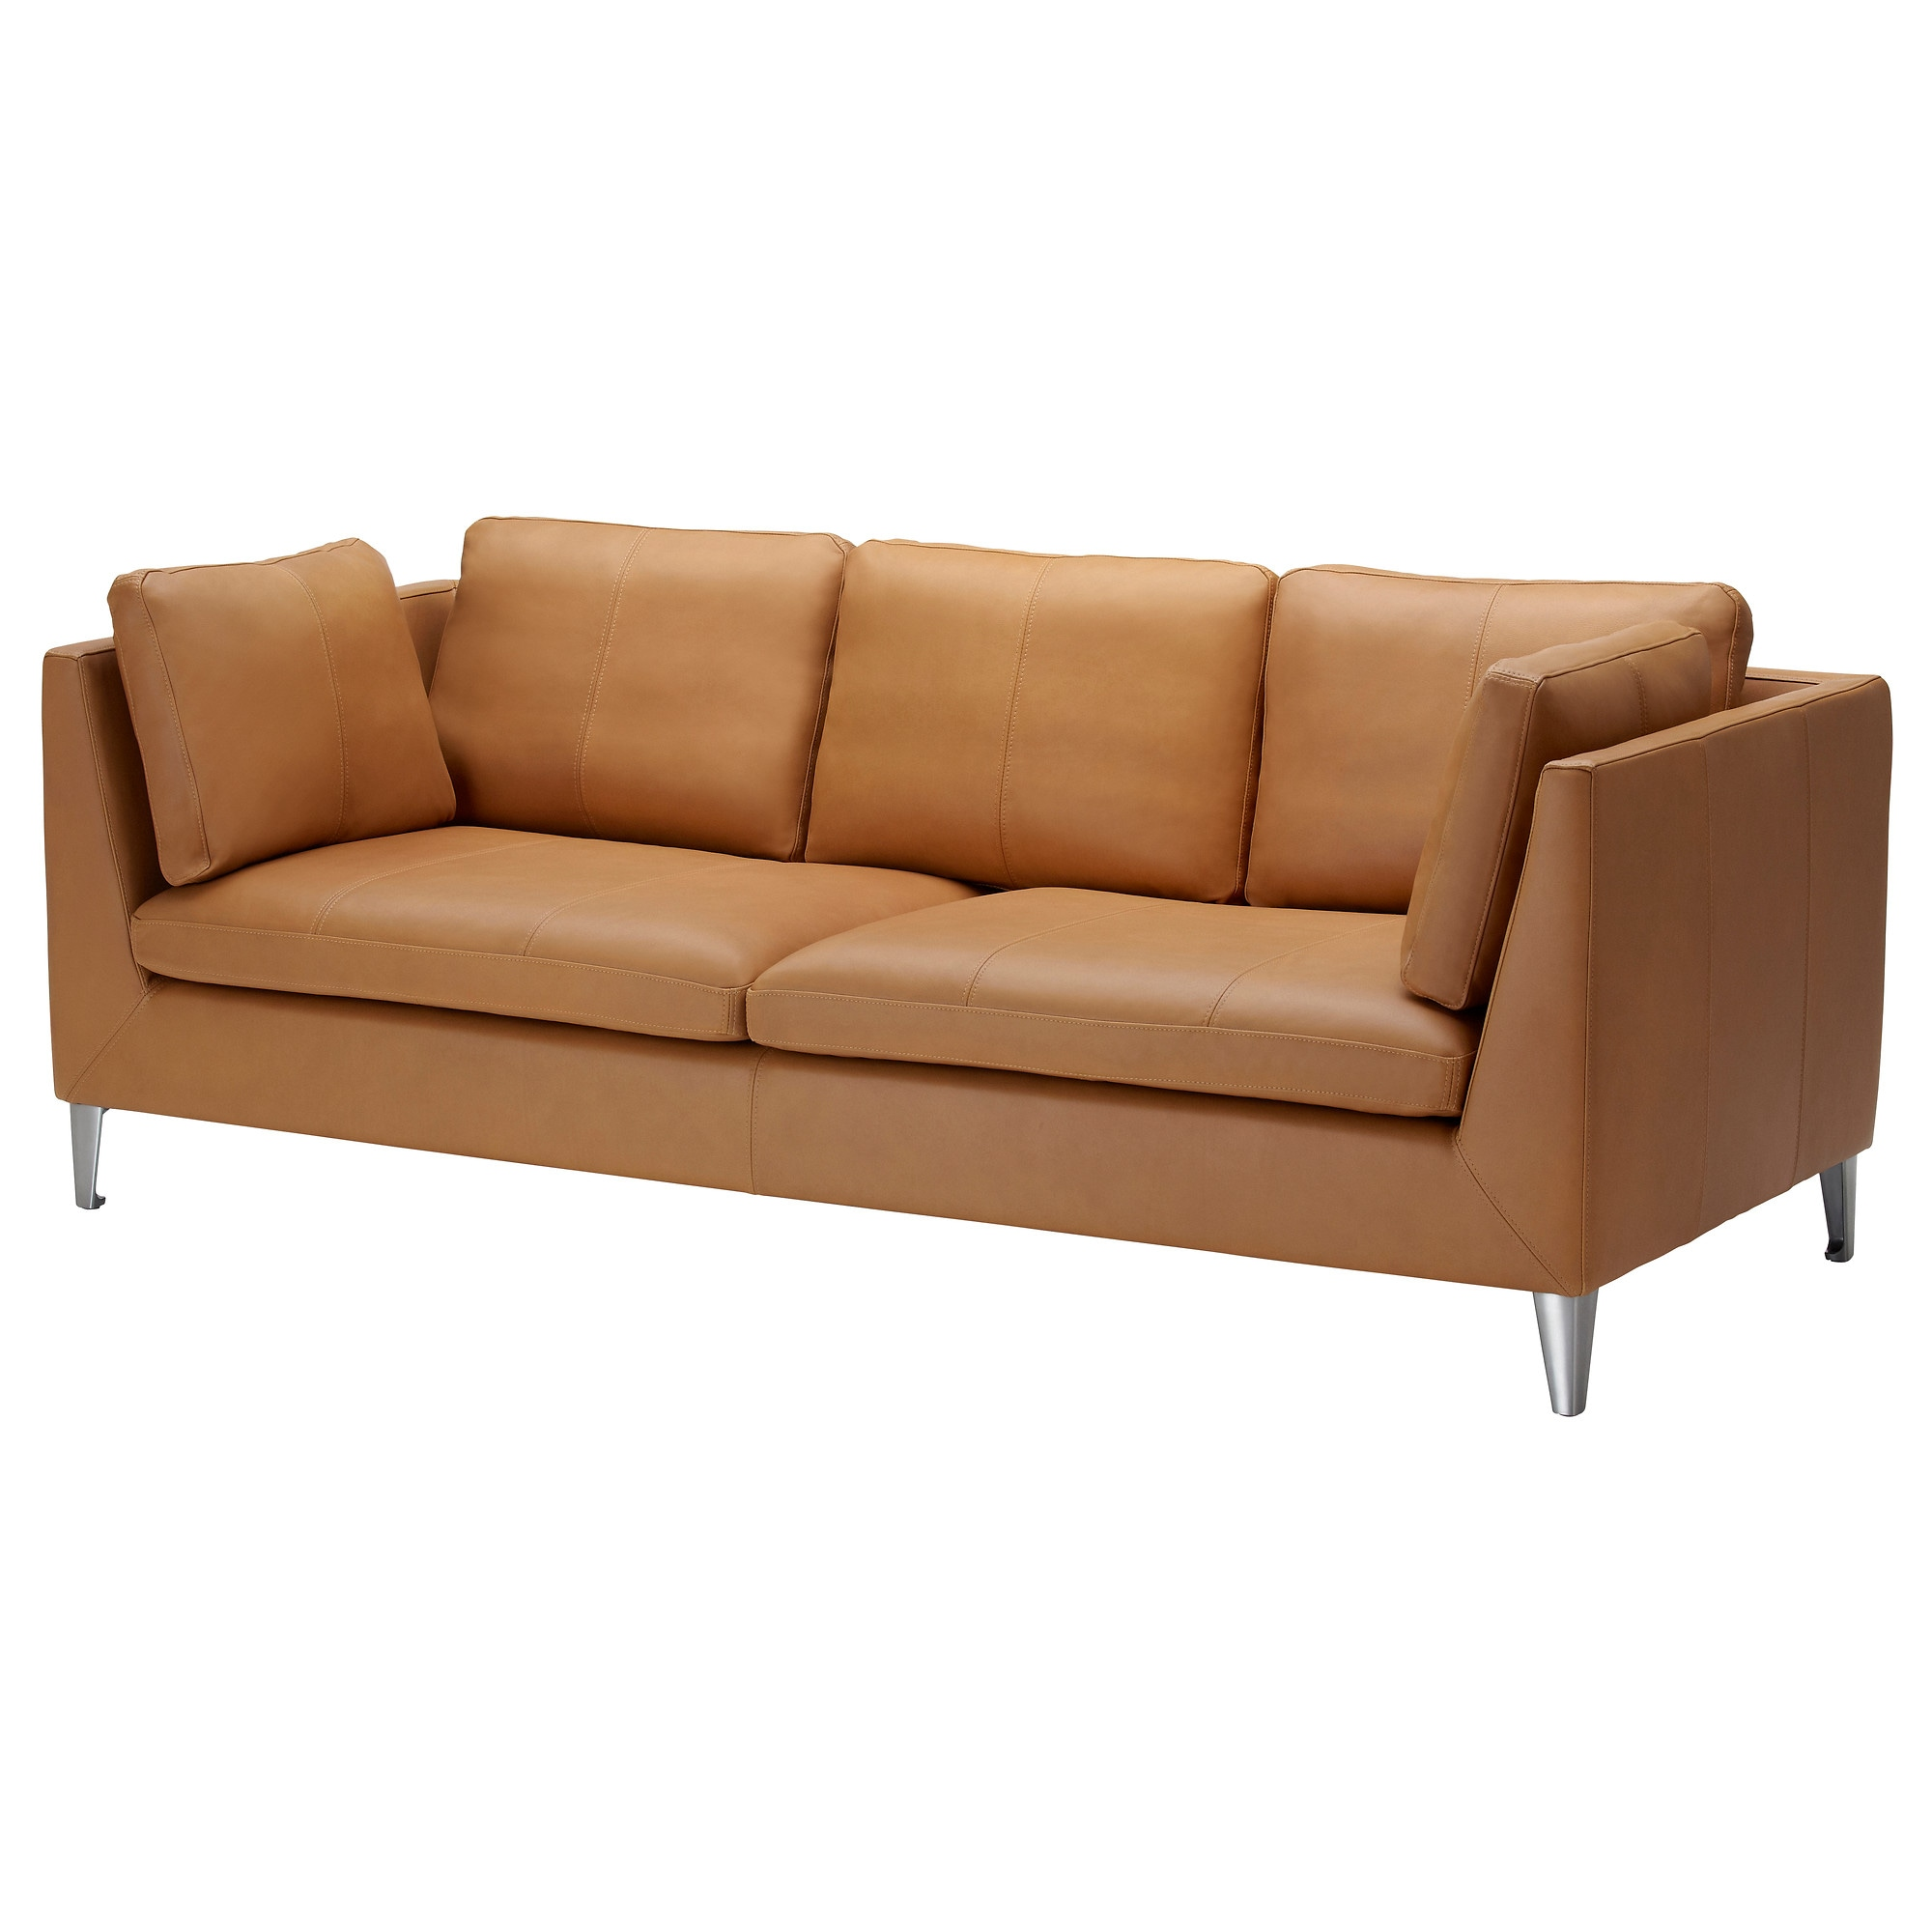 Leather & Faux Leather Couches, Chairs & Ottomans - IKEA